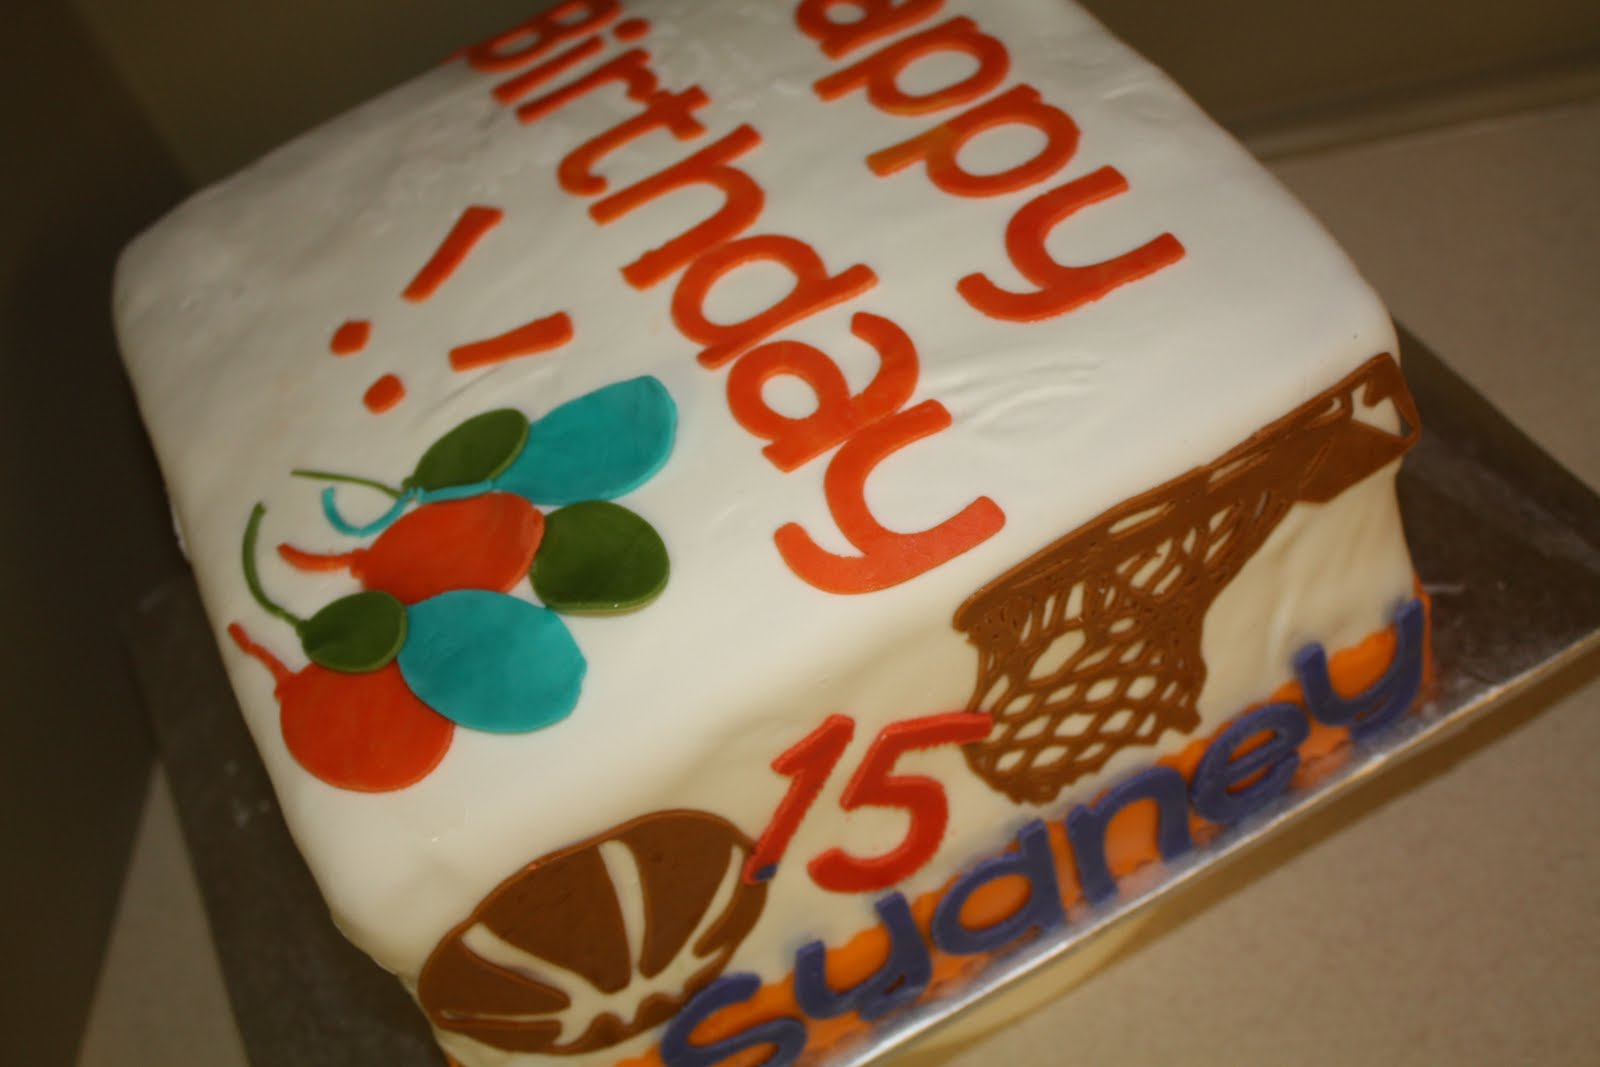 Two Sweet Bakery Fondant multiple birthdays cake